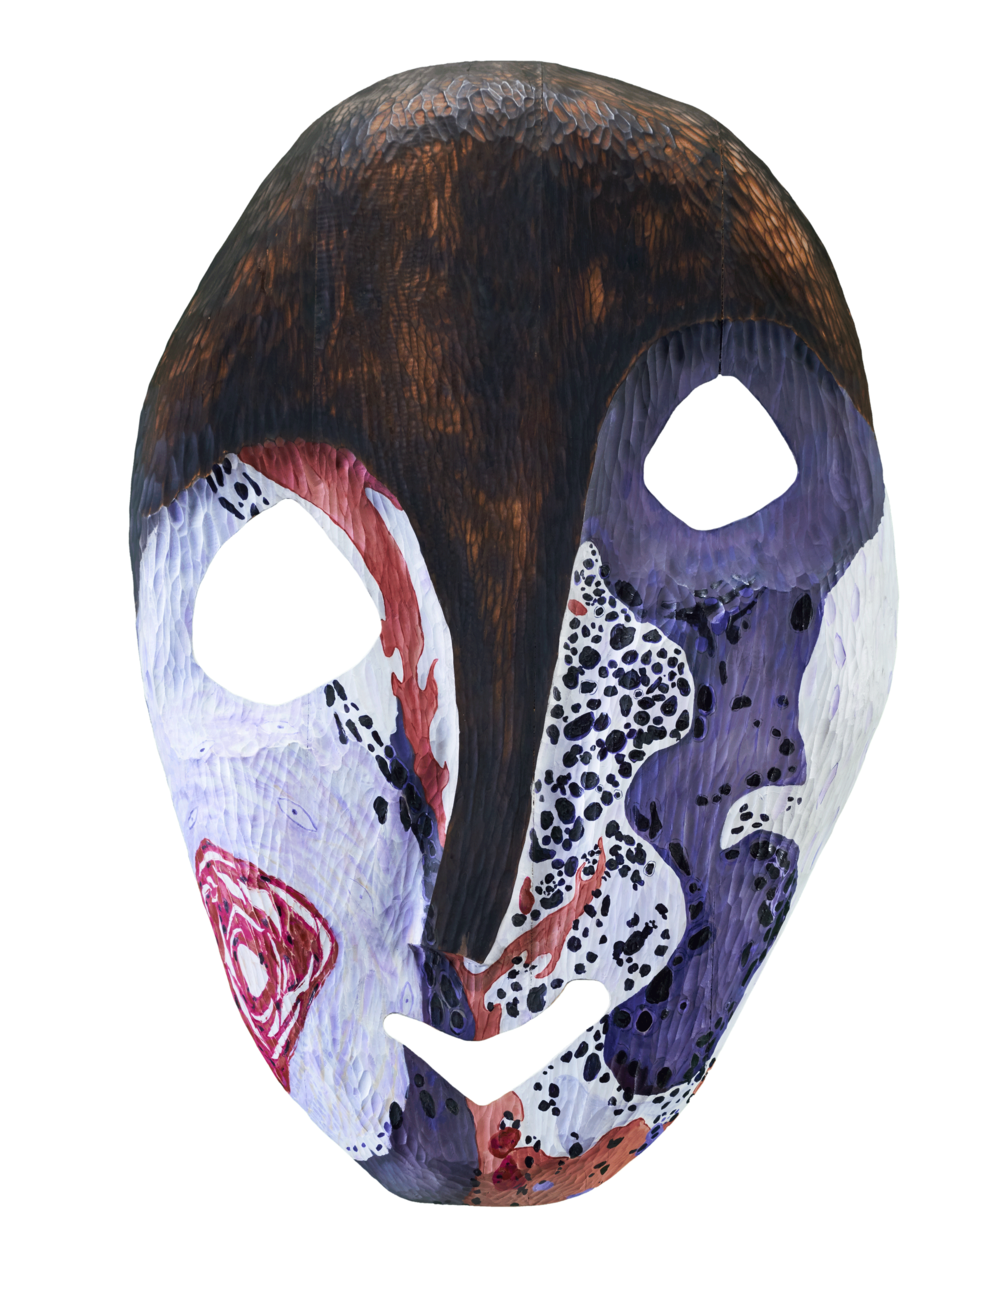 Cancer Mask frontview